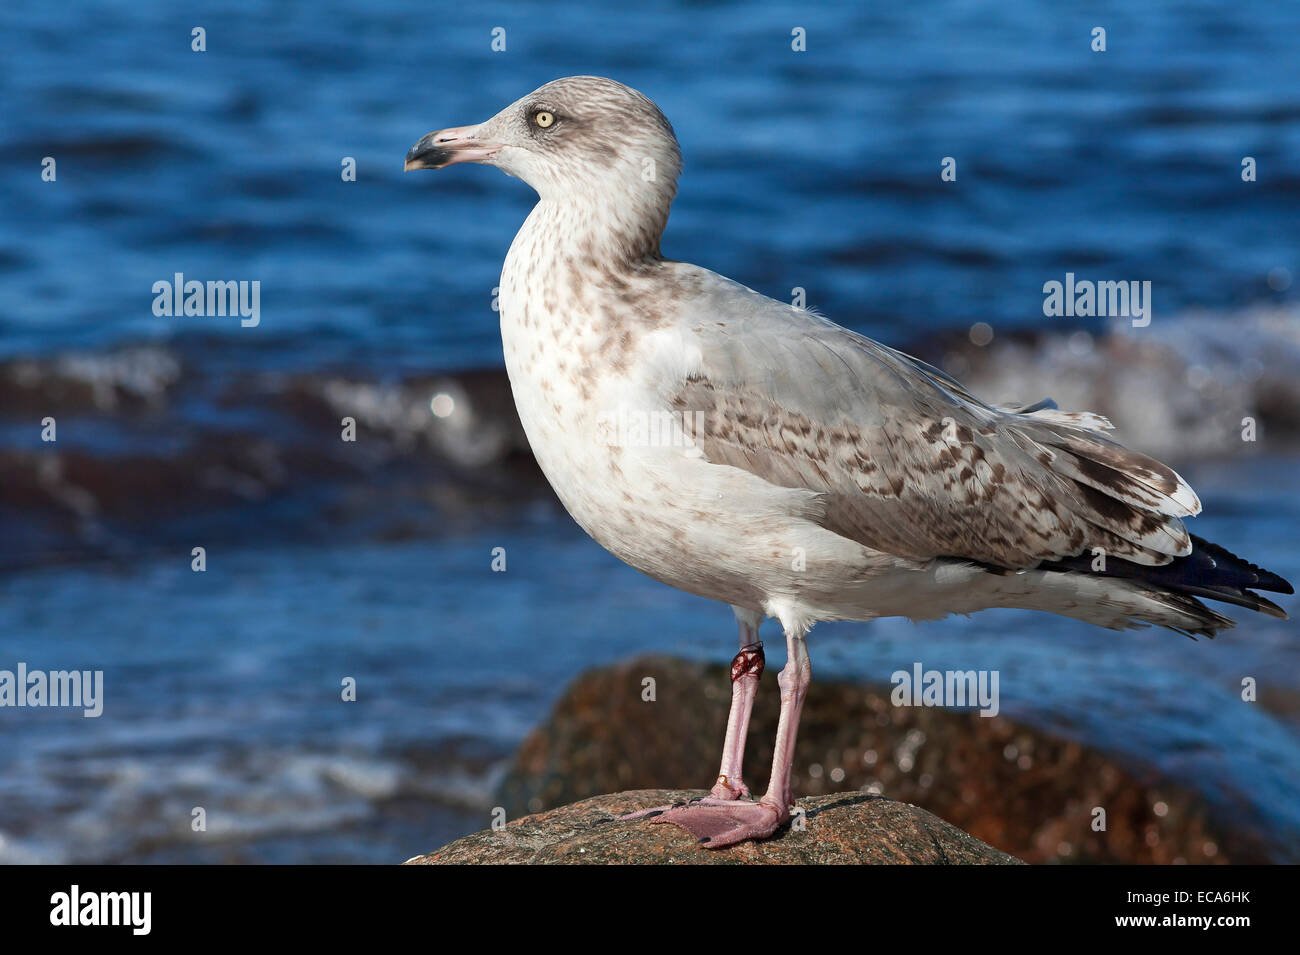 Young Yellow-legged Gull (Larus michahellis) perched on a rock, Baltic Sea, Mecklenburg-Western Pomerania, Germany Stock Photo